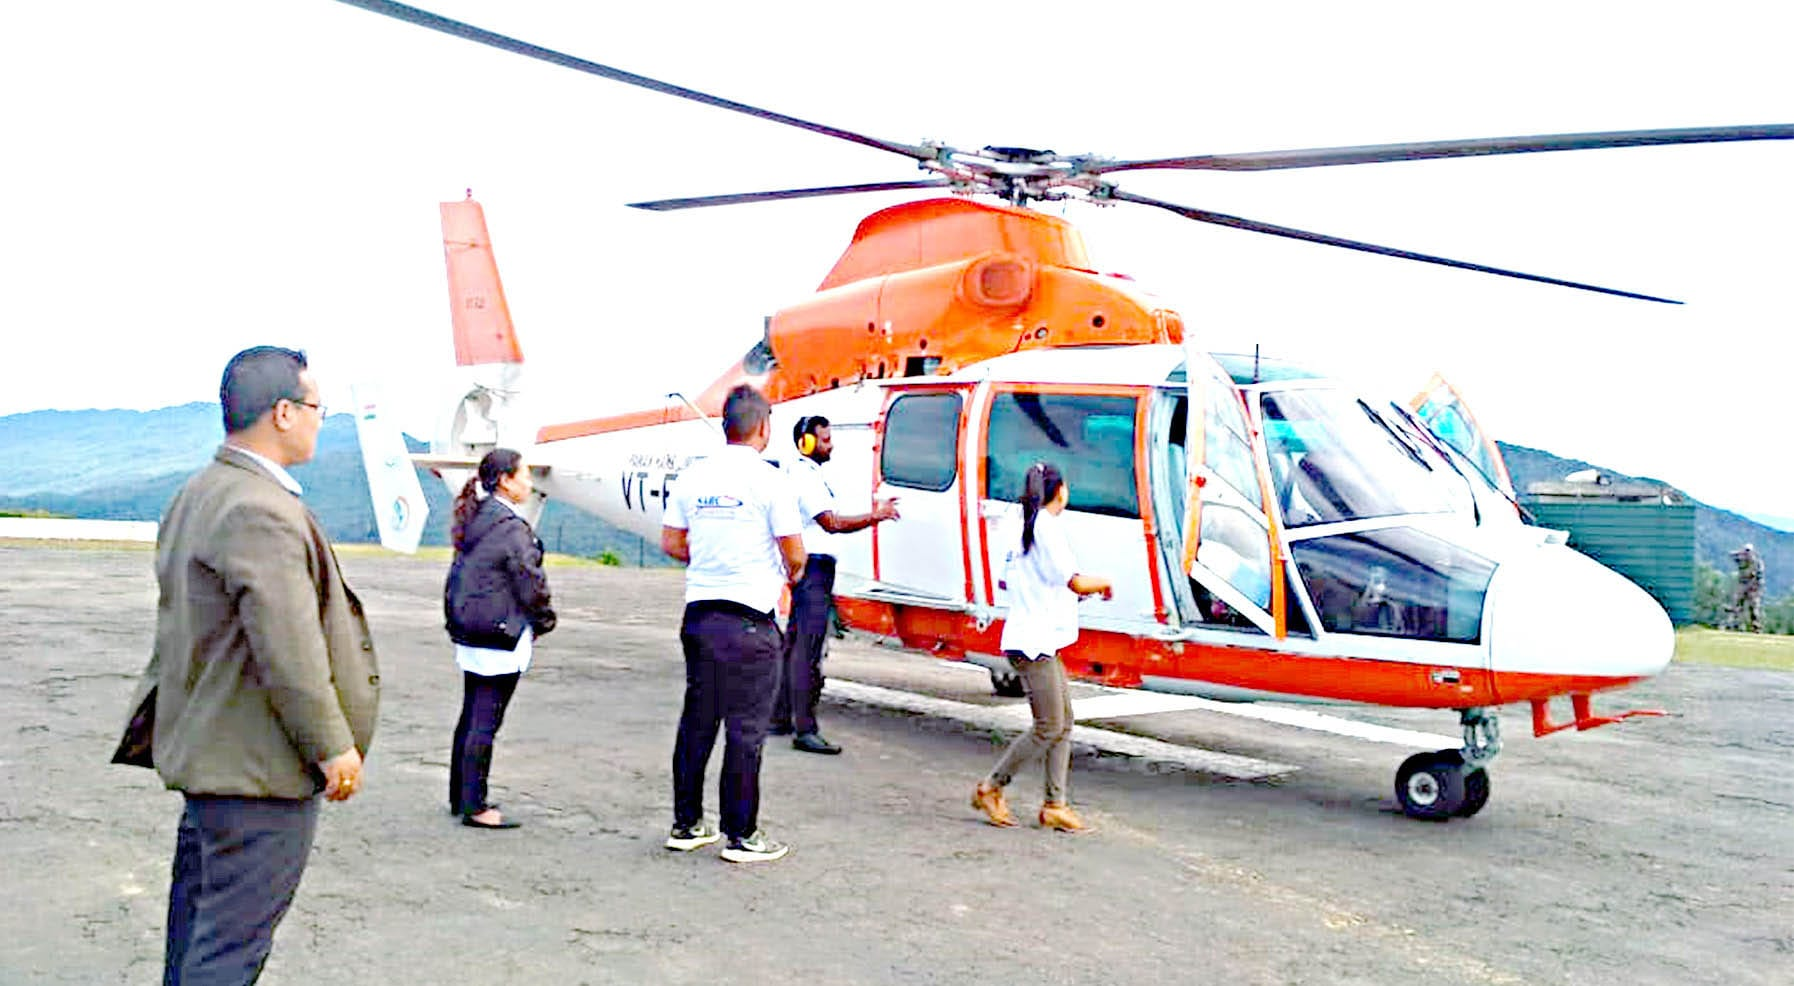 Imphal-Moreh and Imphal-Tamenglong Helicopter Services Launched in Manipur